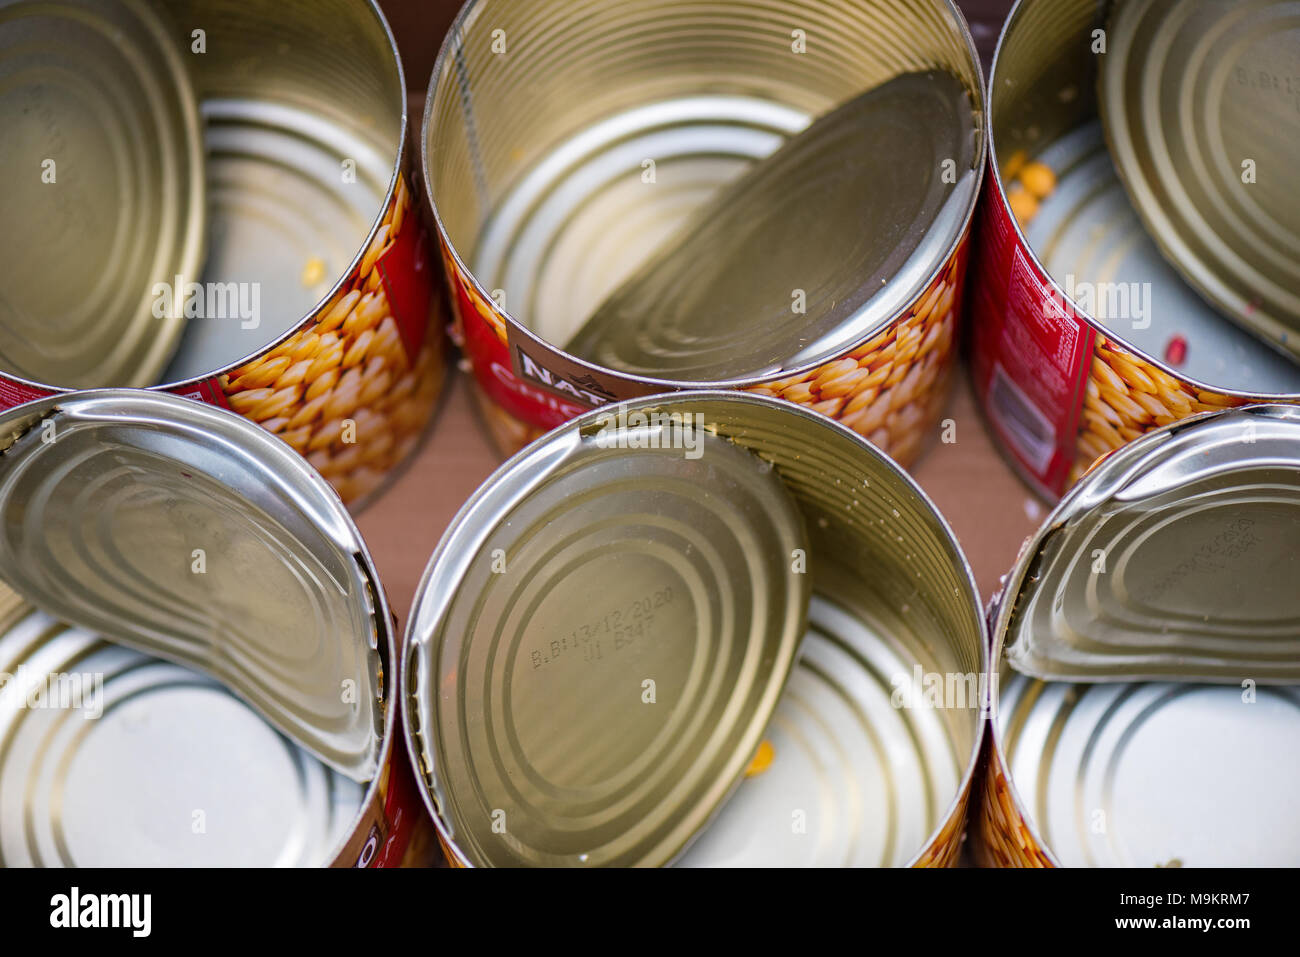 A quantity or selection of empty metal baked bin tins with the lids attached ready for collection with the rubbish or recycling. Recycling metals cans - Stock Image